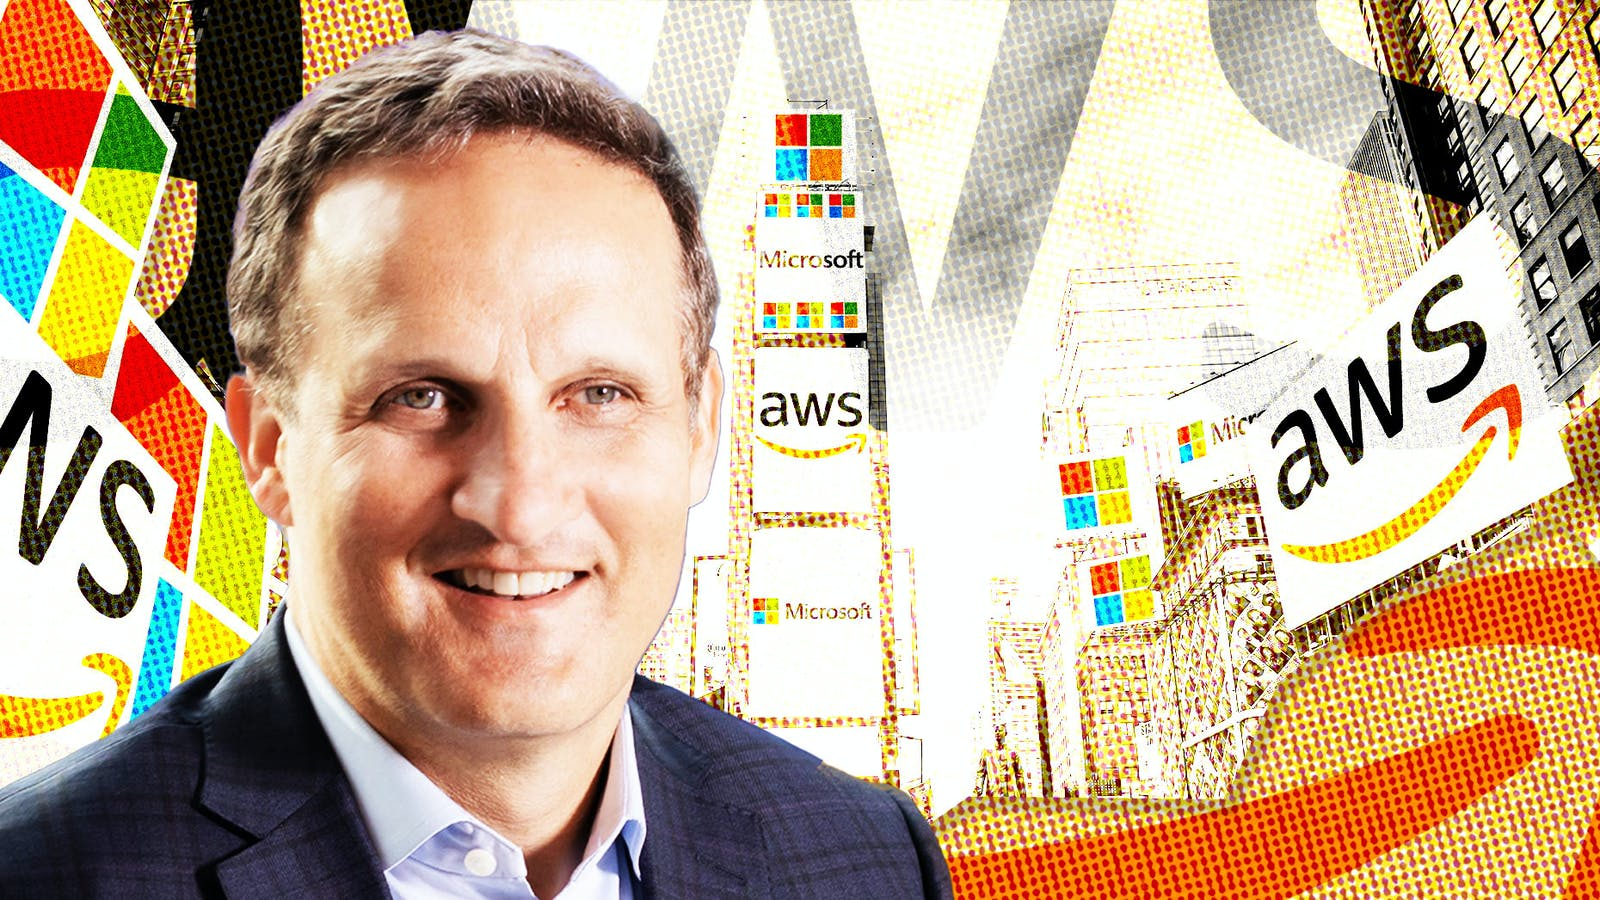 Photo of AWS CEO Adam Selipsky by Amazon. Illustration by Mike Sullivan